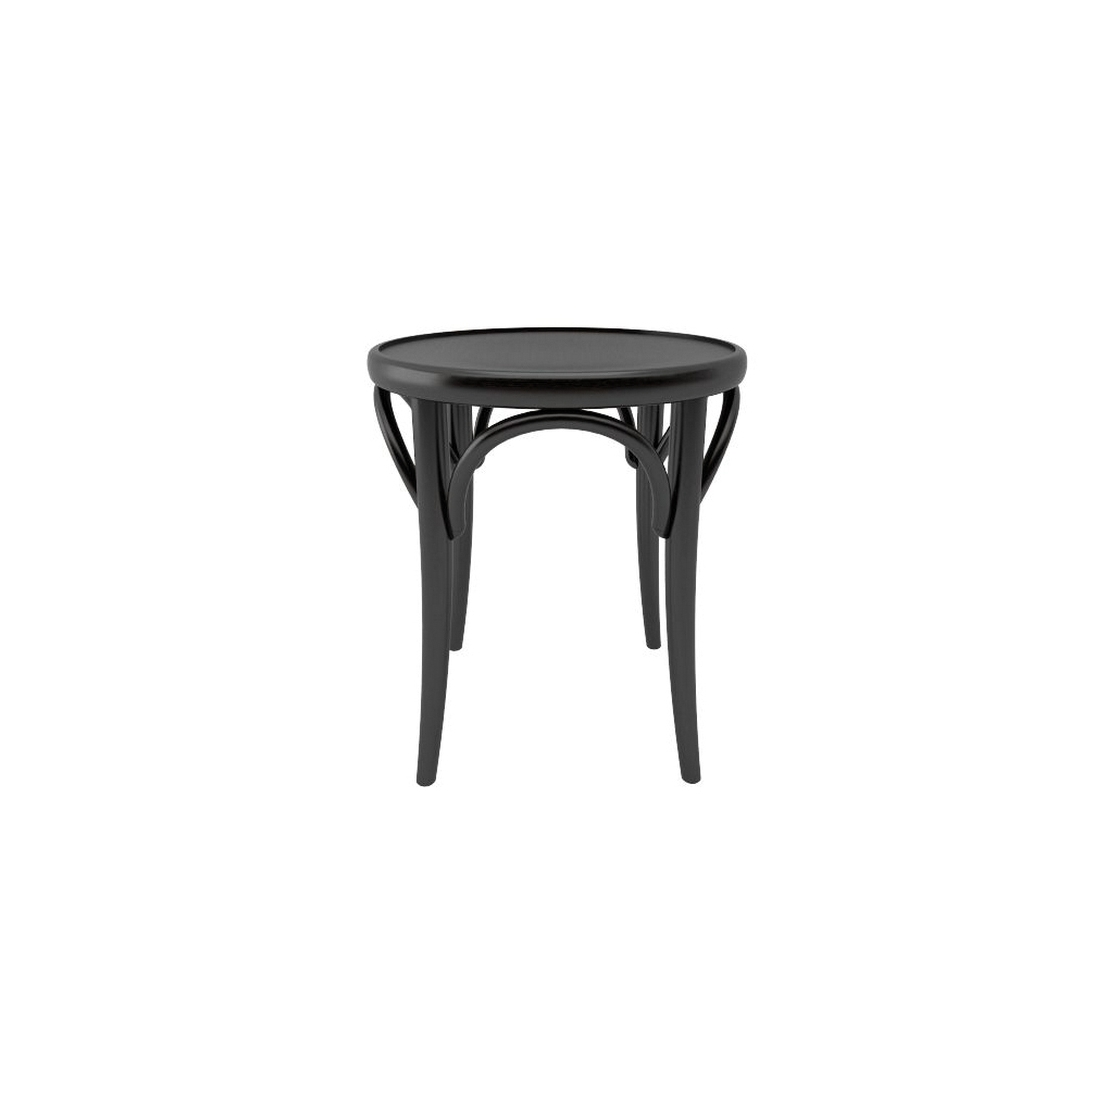 tabouret de cuisine design tabouret de cuisine design babah wood 65 pieds bois naturel assise. Black Bedroom Furniture Sets. Home Design Ideas